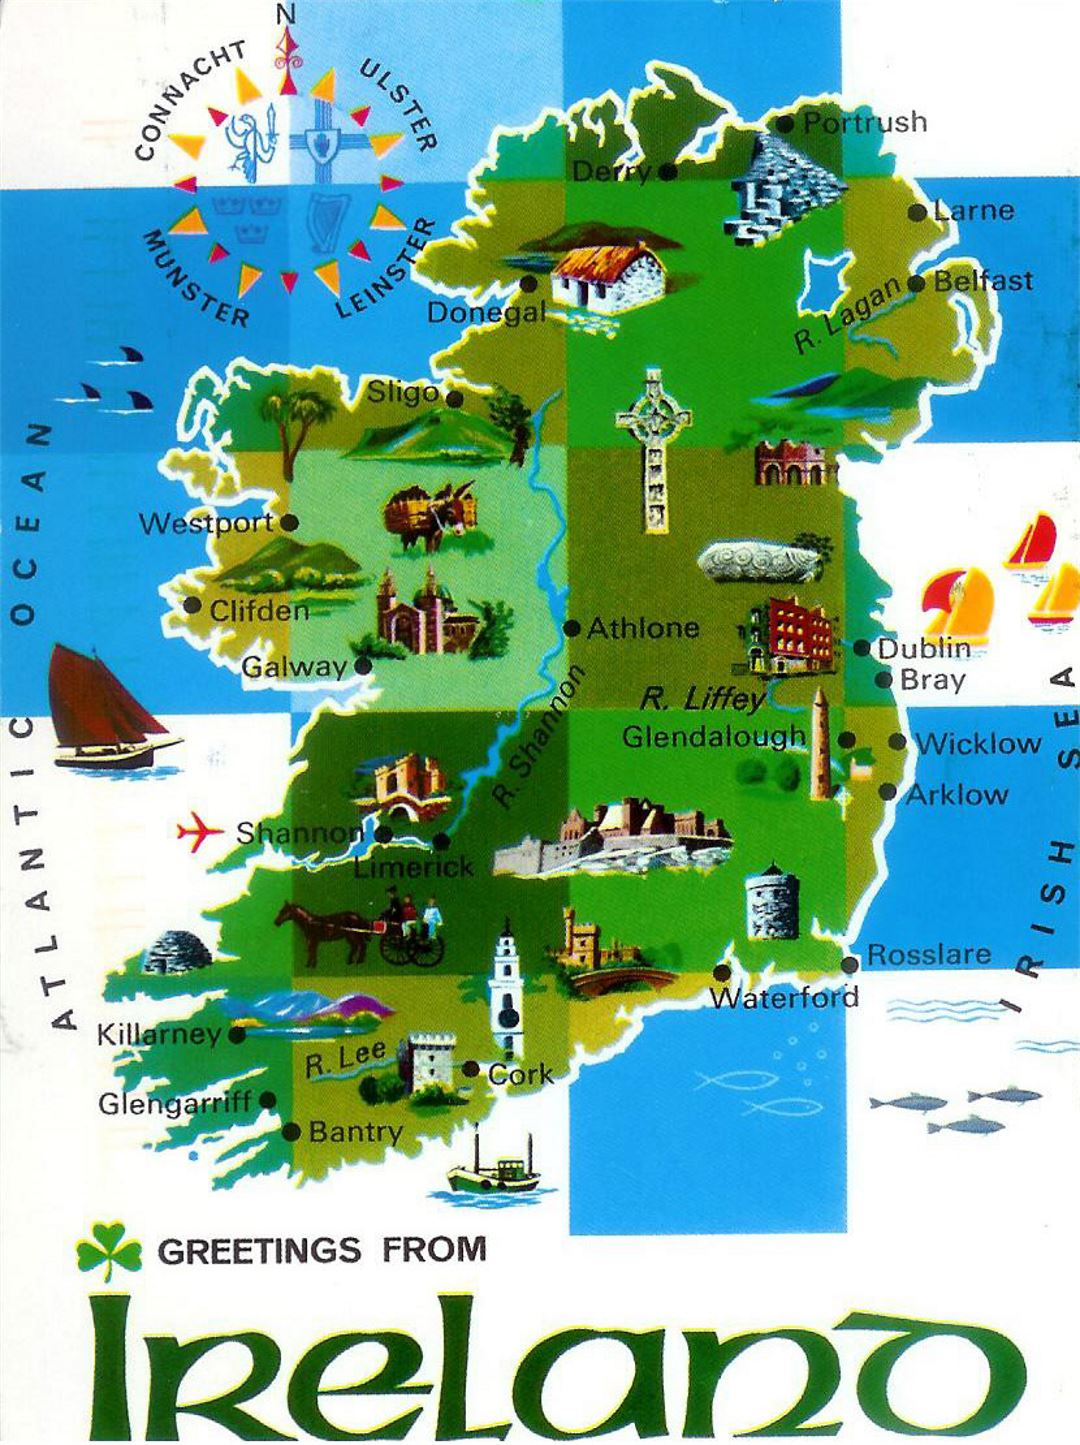 Detailed illustrated map of Ireland